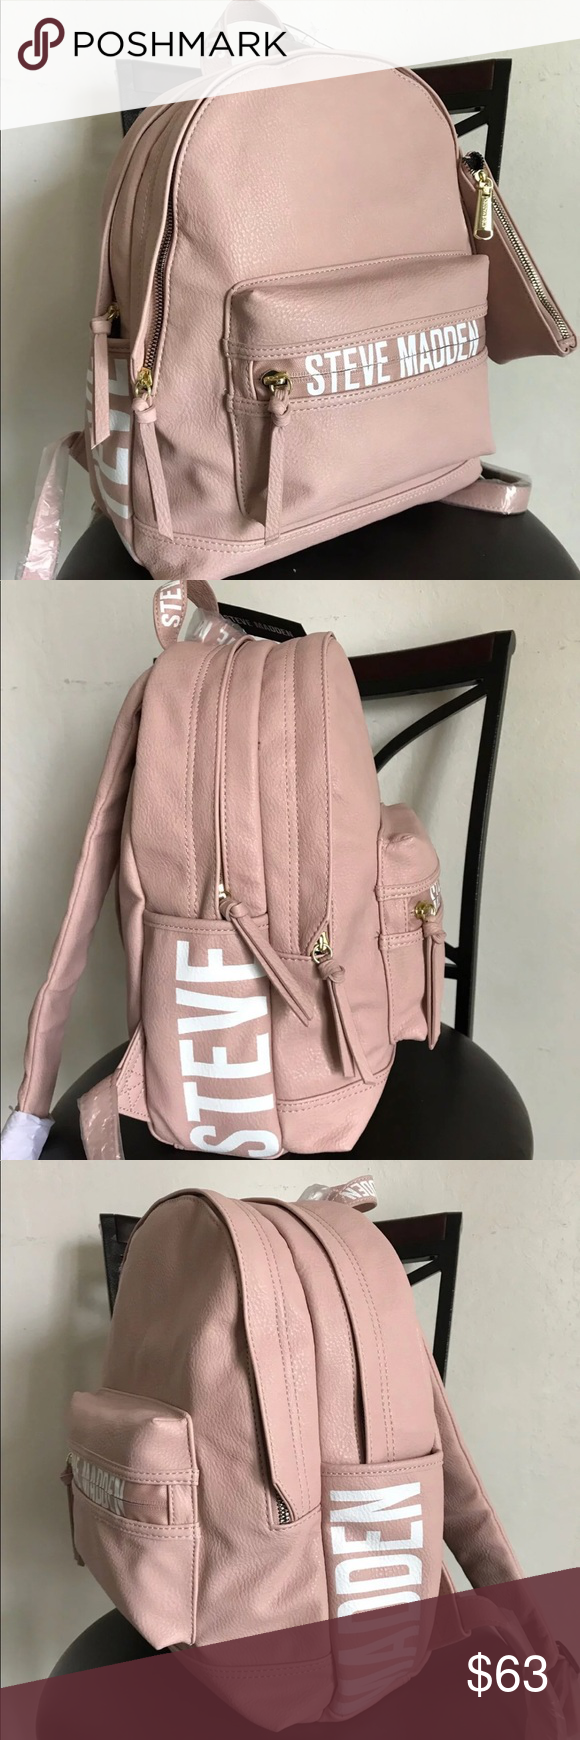 a8f42dc178 Steve Madden Blush Backpack School Bag book bag Steve Madden backpack with  matching zippered with leash